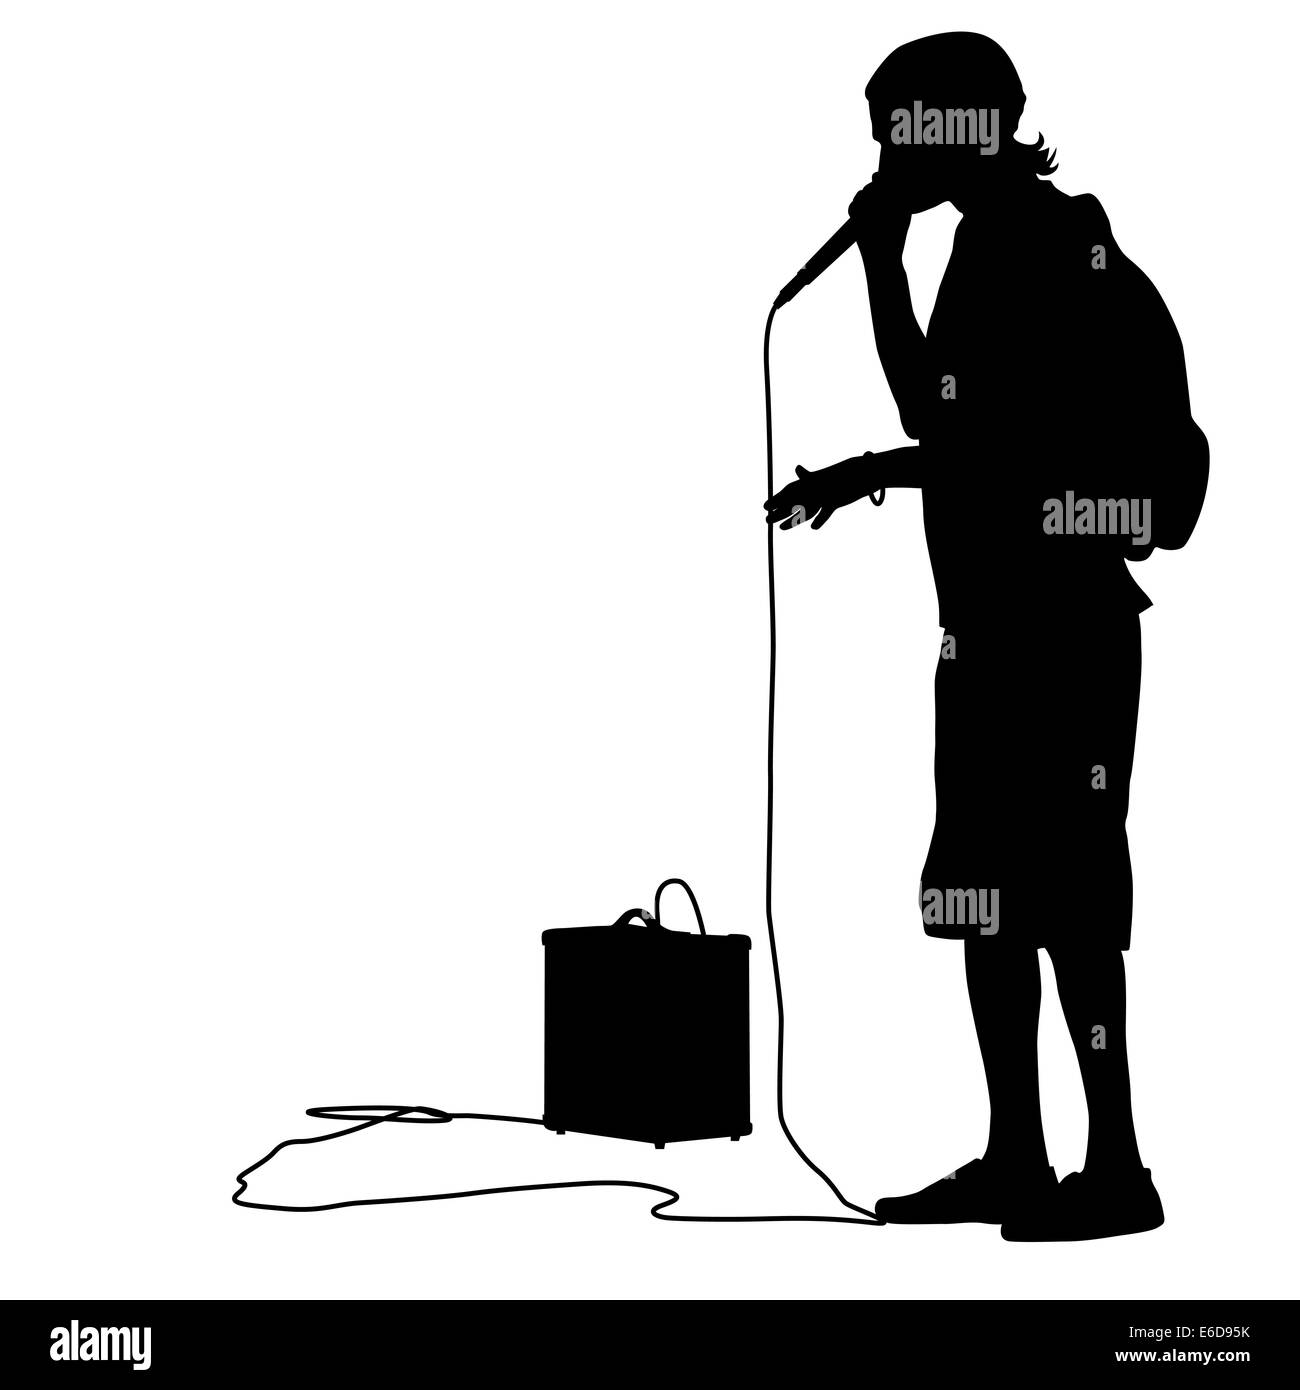 Beatboxer Stock Photos & Beatboxer Stock Images - Alamy